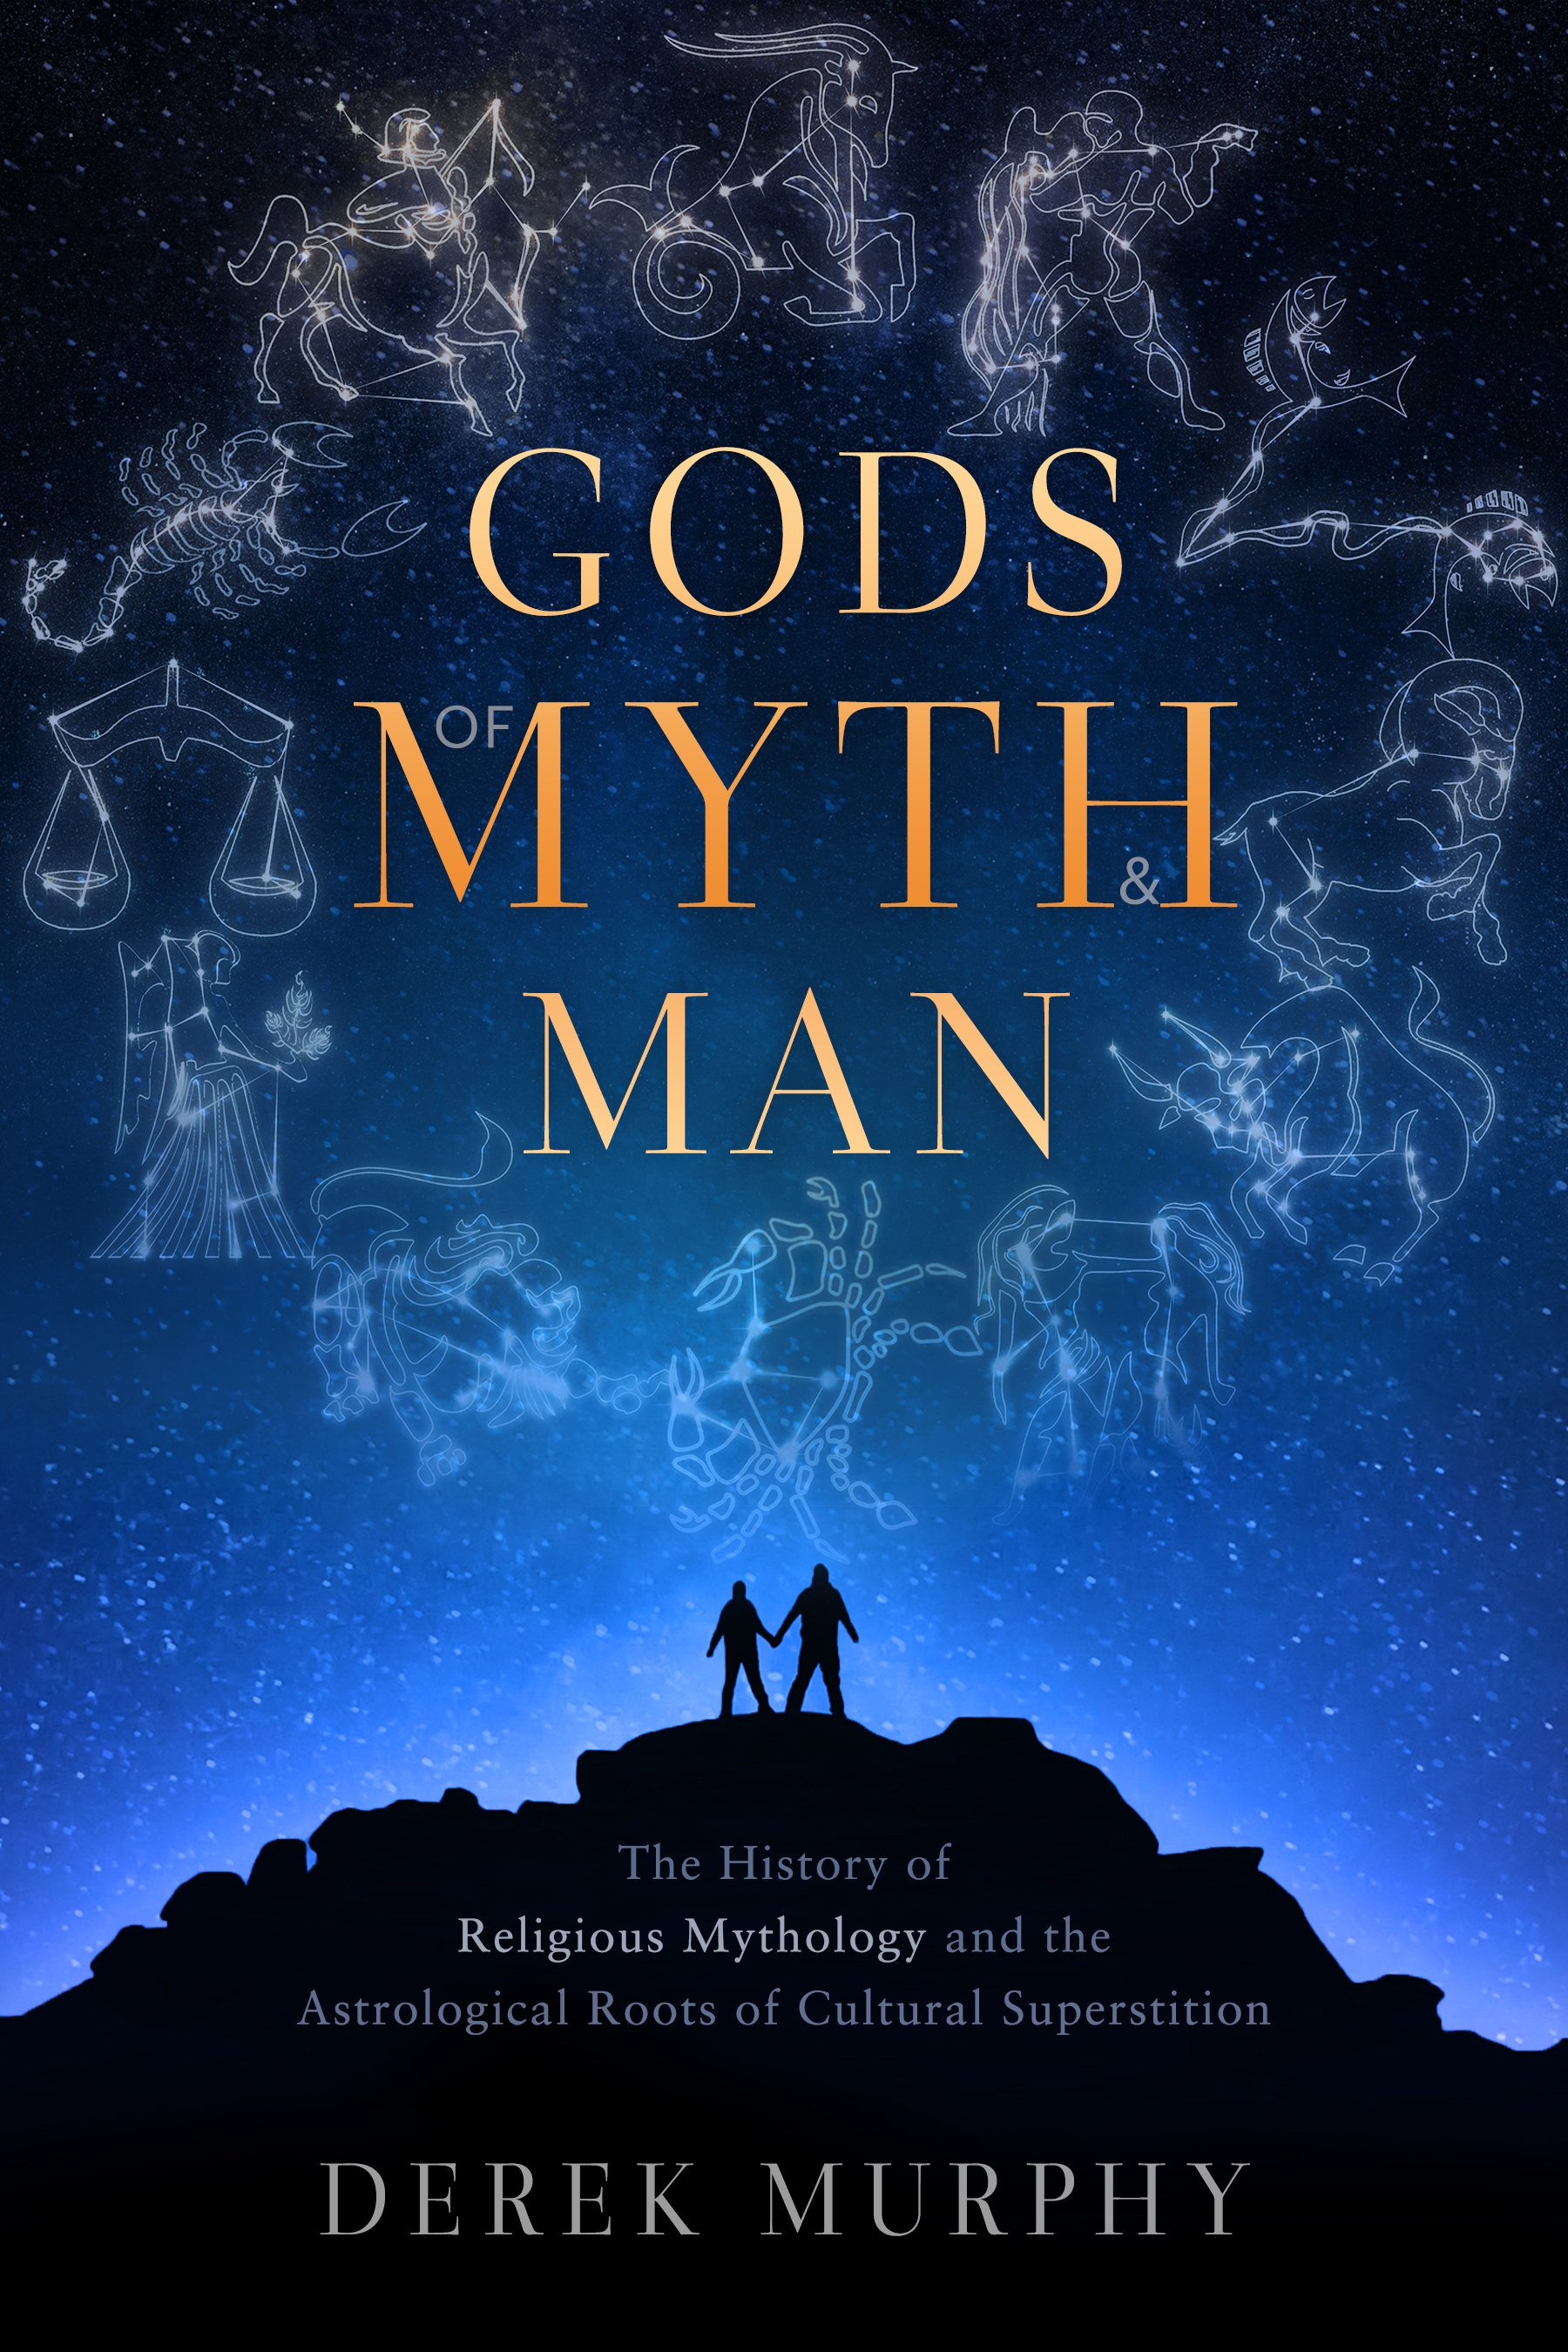 Gods of Myth and Man